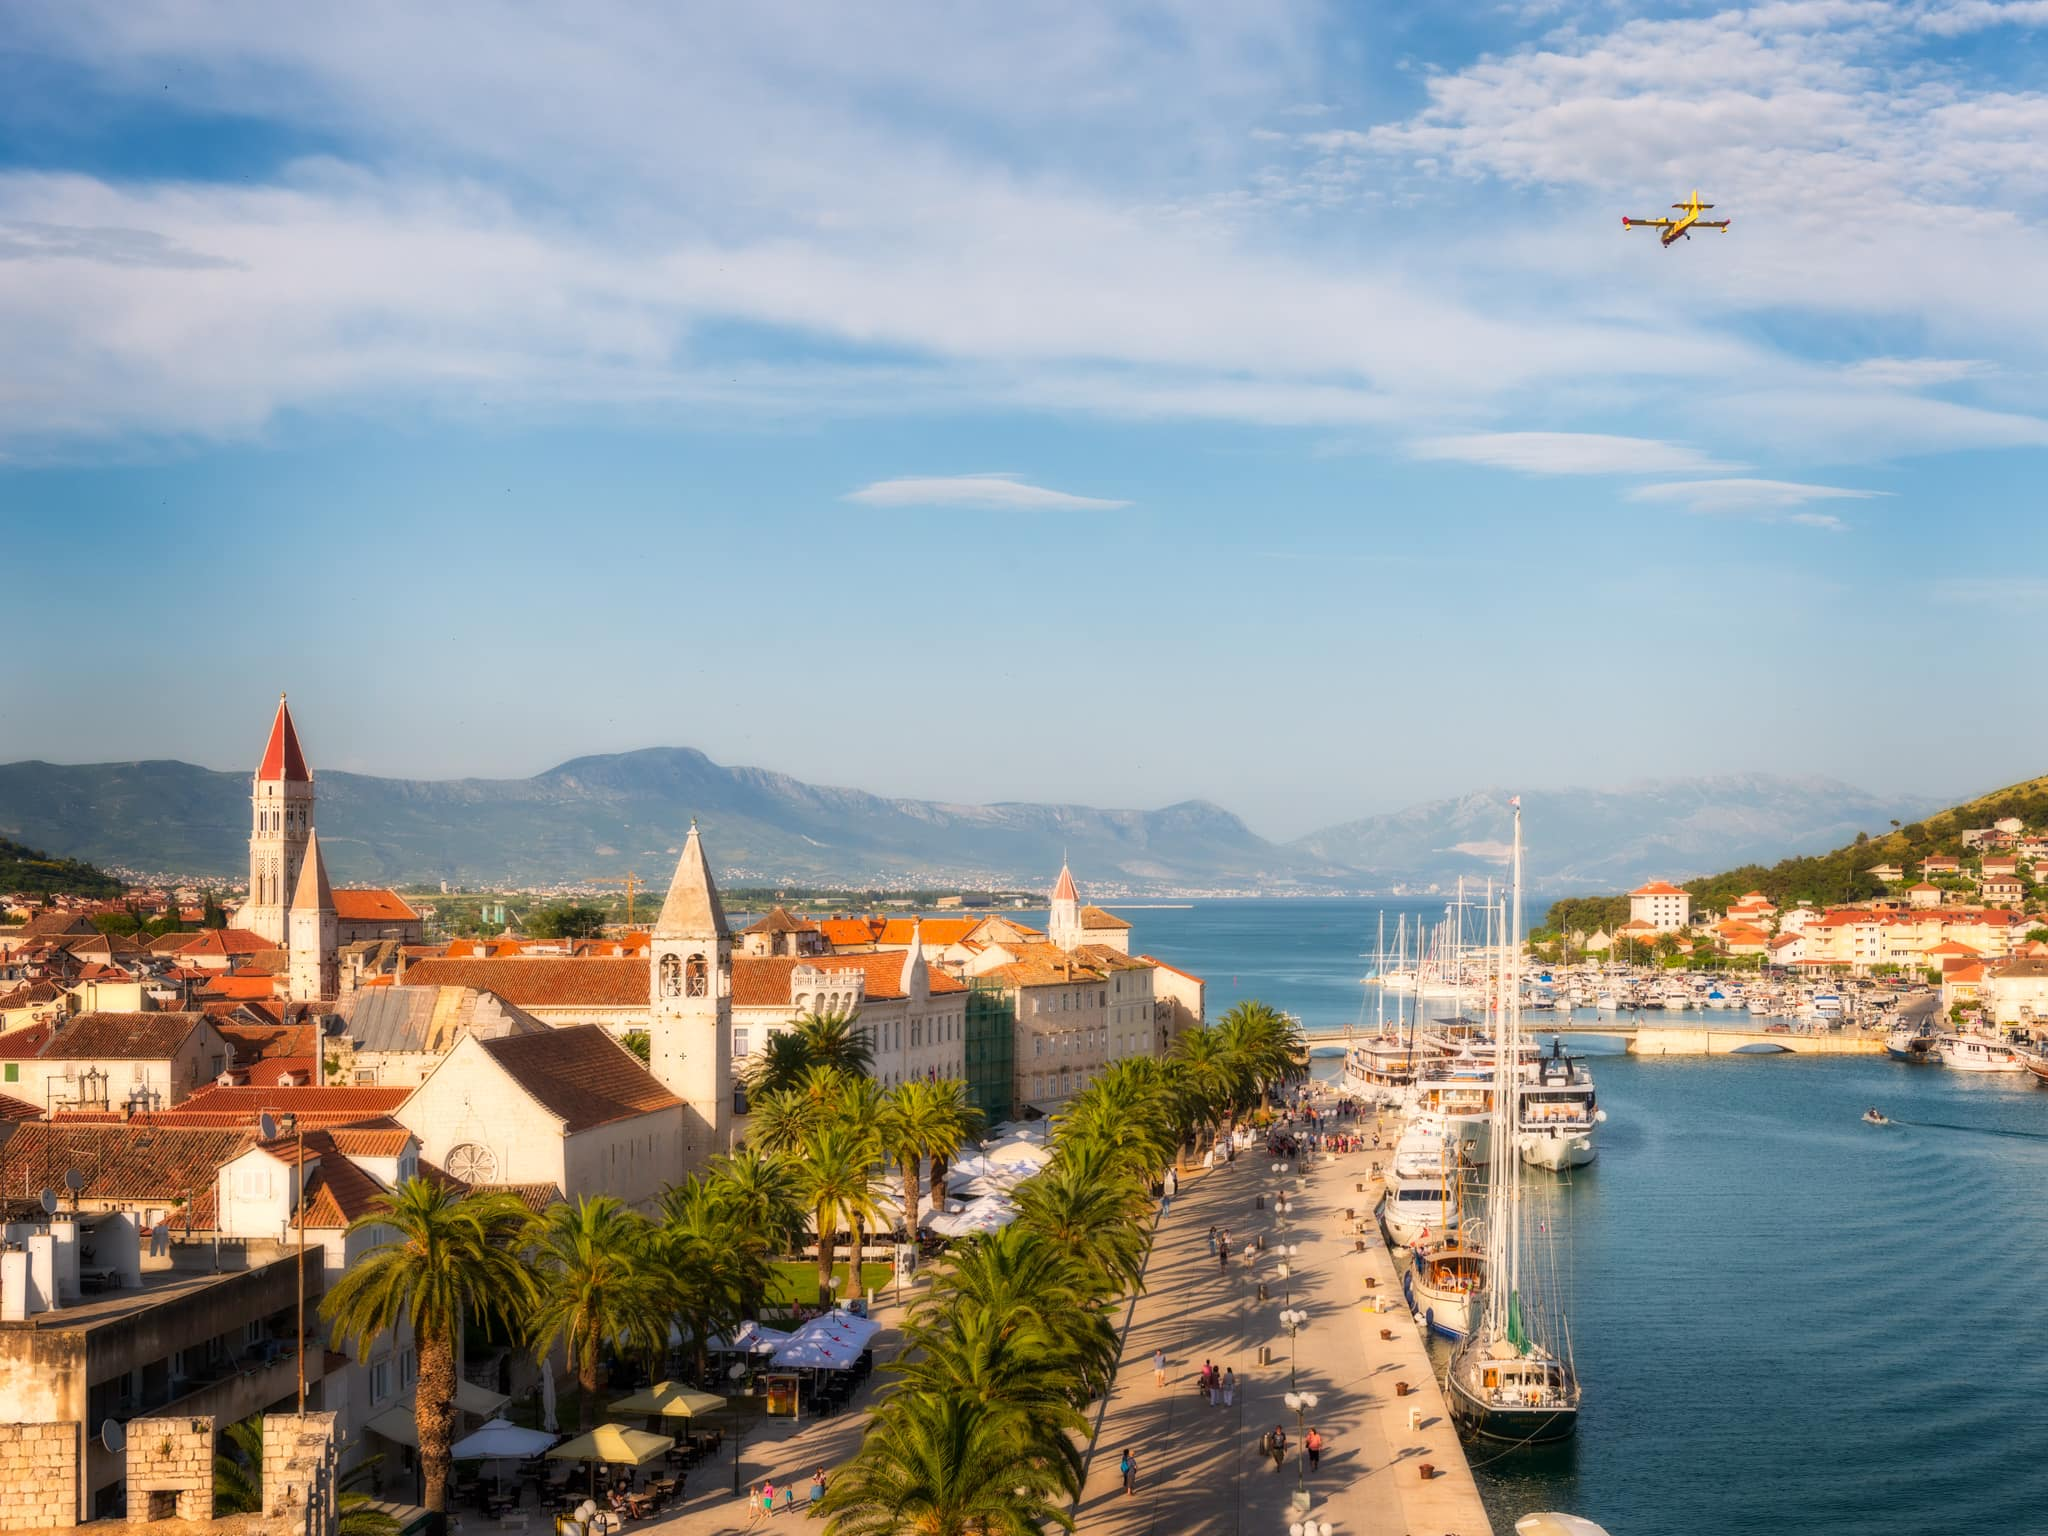 Historical town Trogir in Croatia